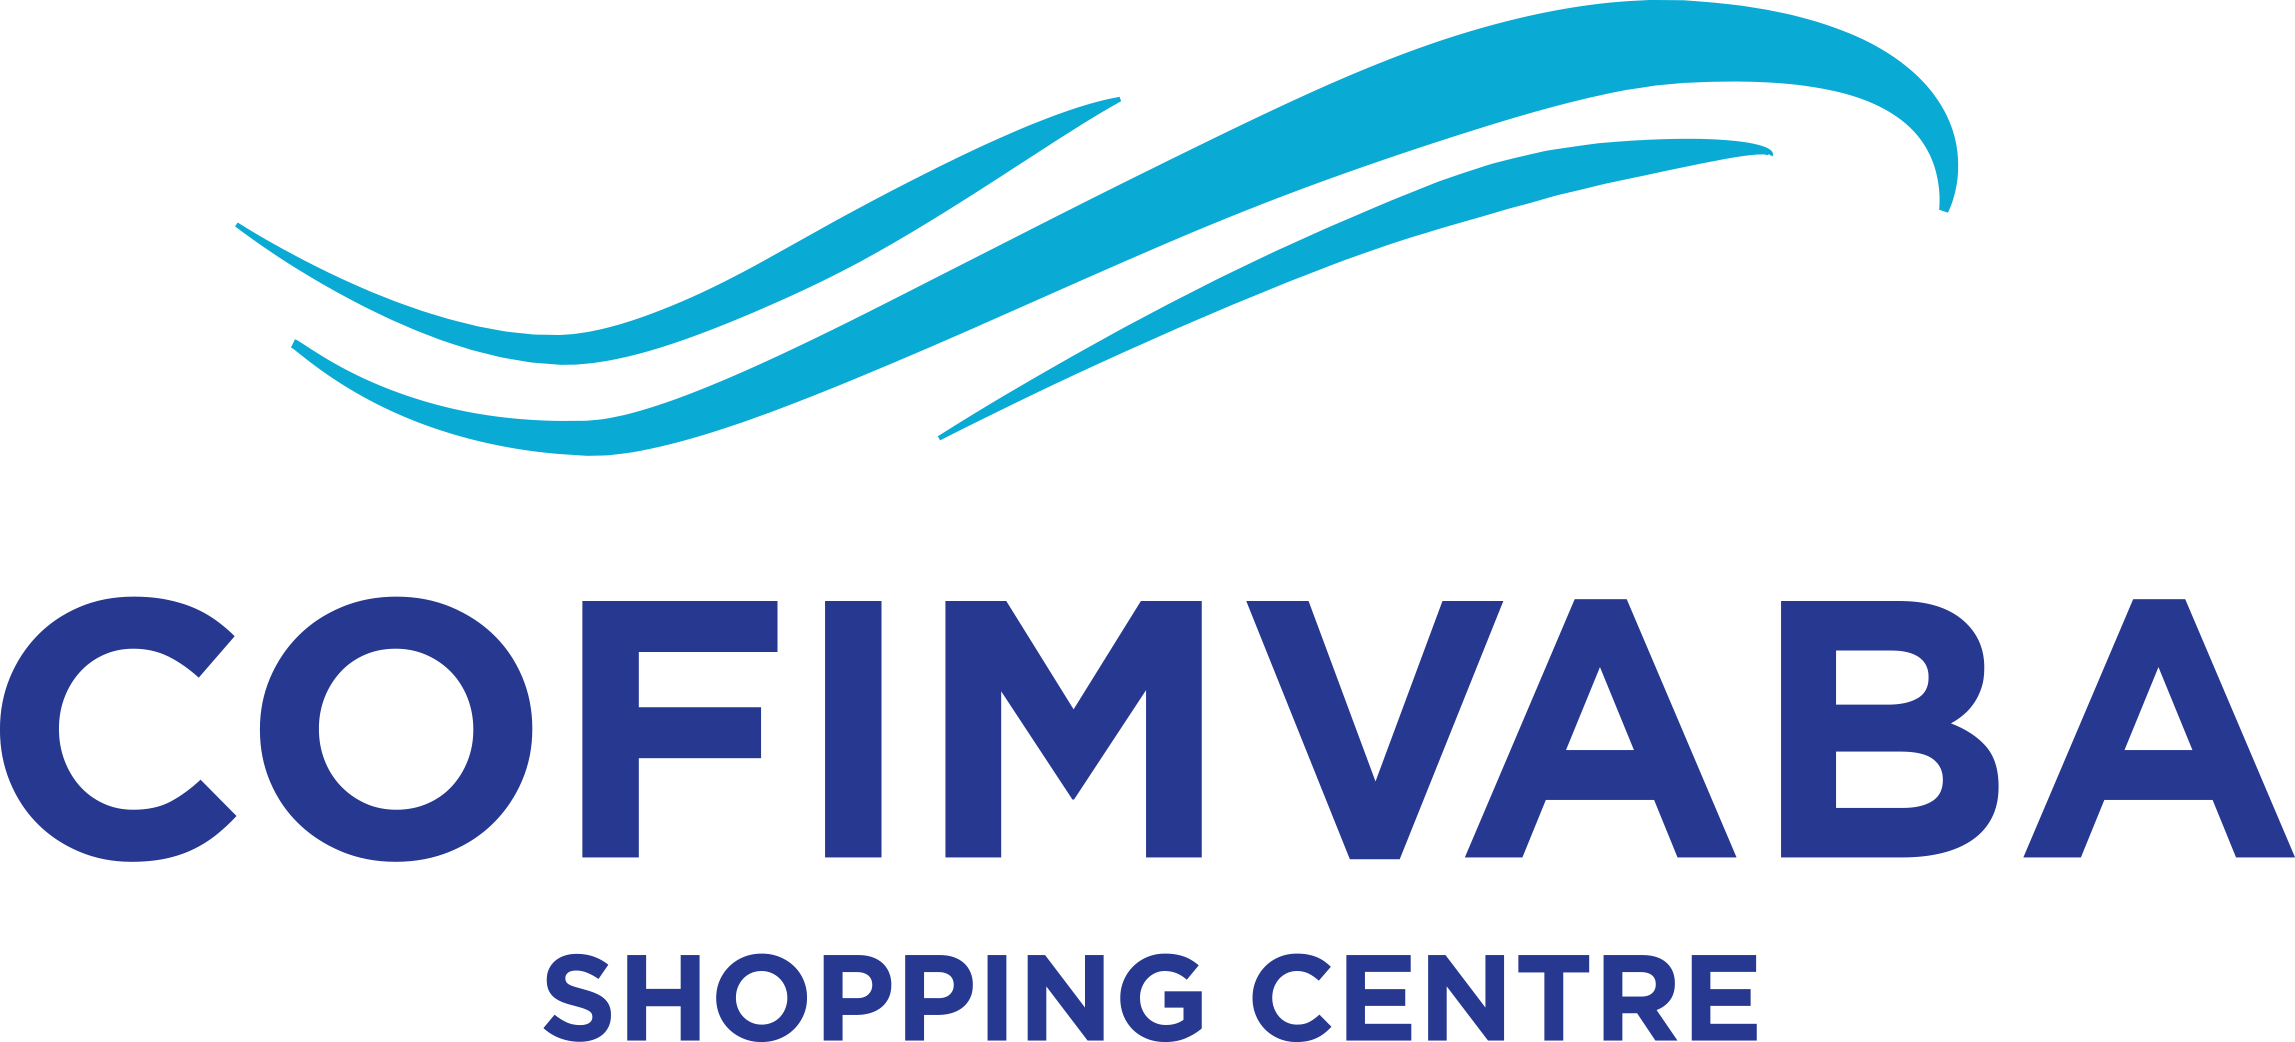 Cofimvaba Shopping Centre